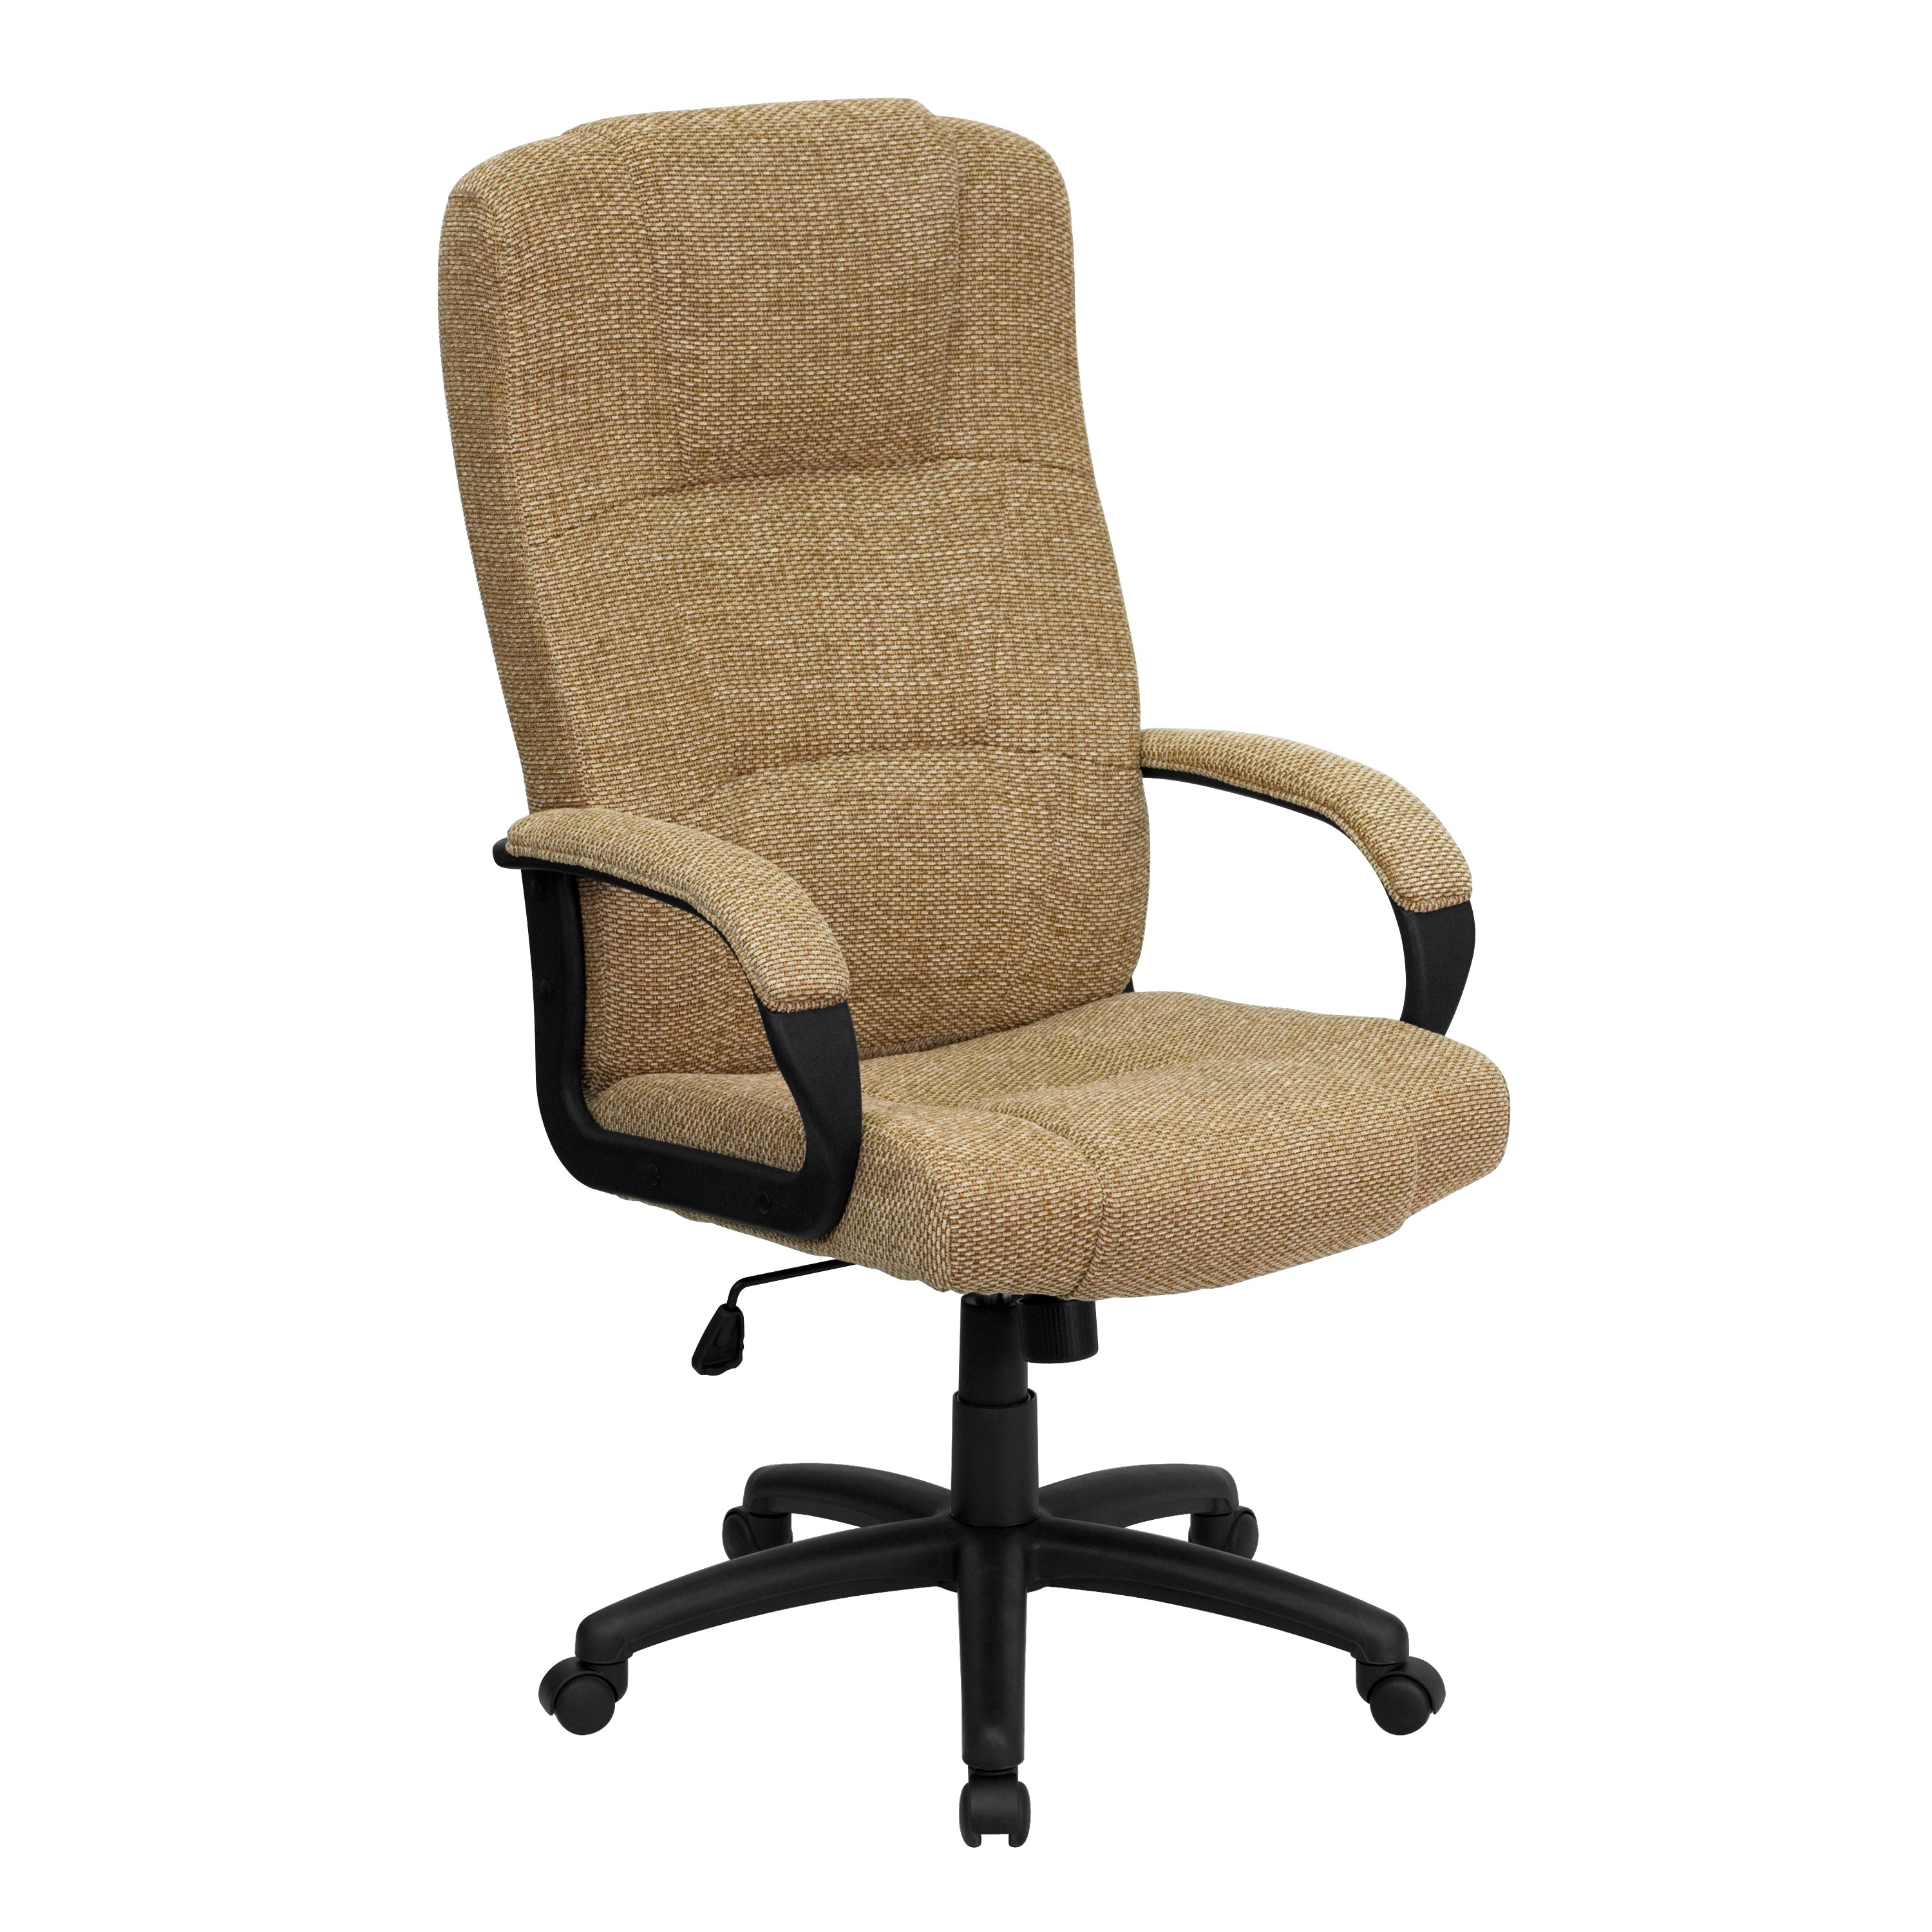 High Back Beige Fabric Executive fice Chair